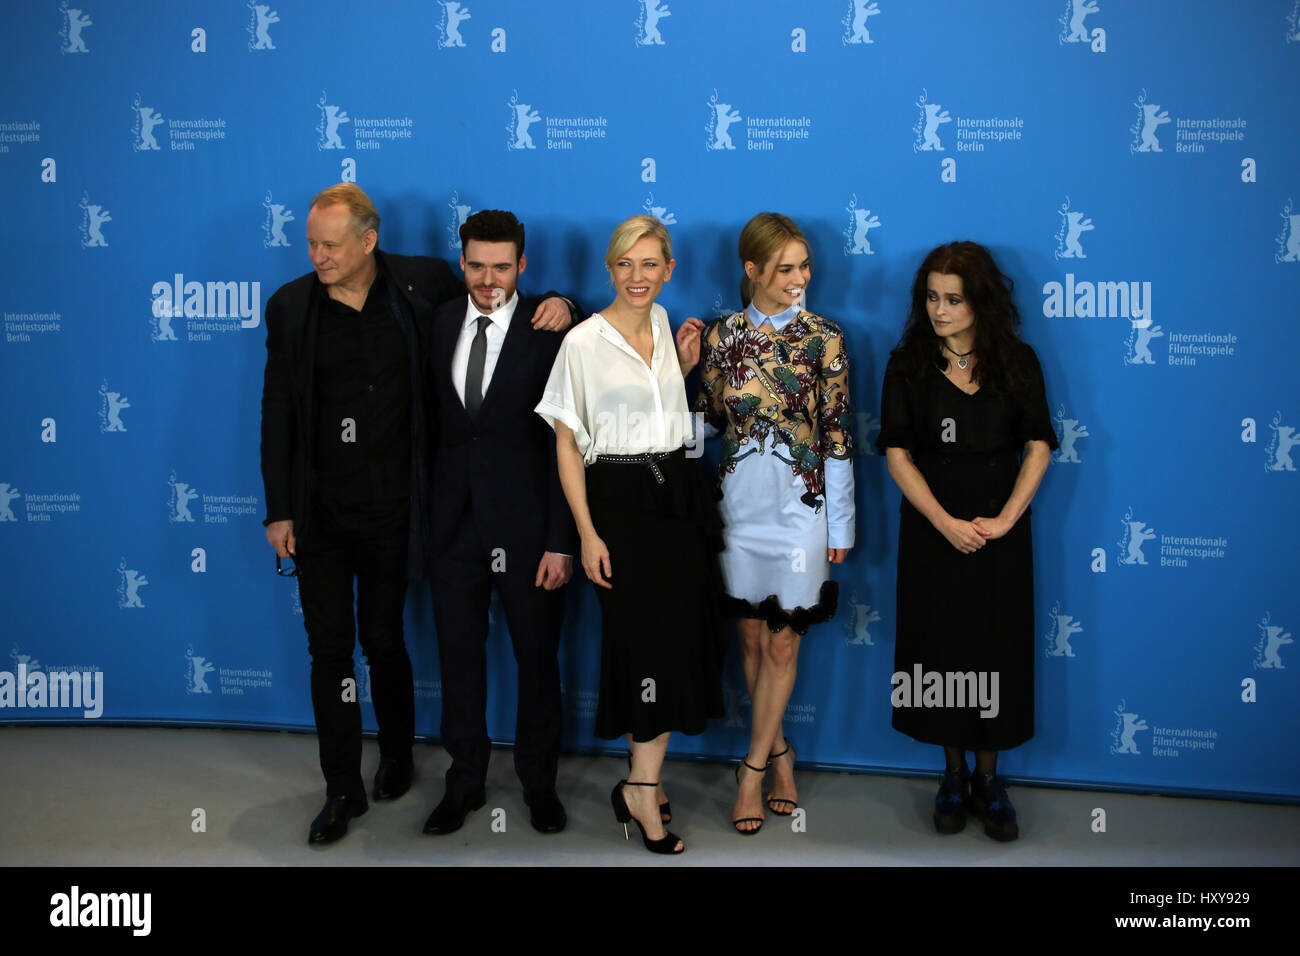 Berlin, Germany, February 13th, 2015: 'Cinderella' cast for film premiere at Berlinale. - Stock Image